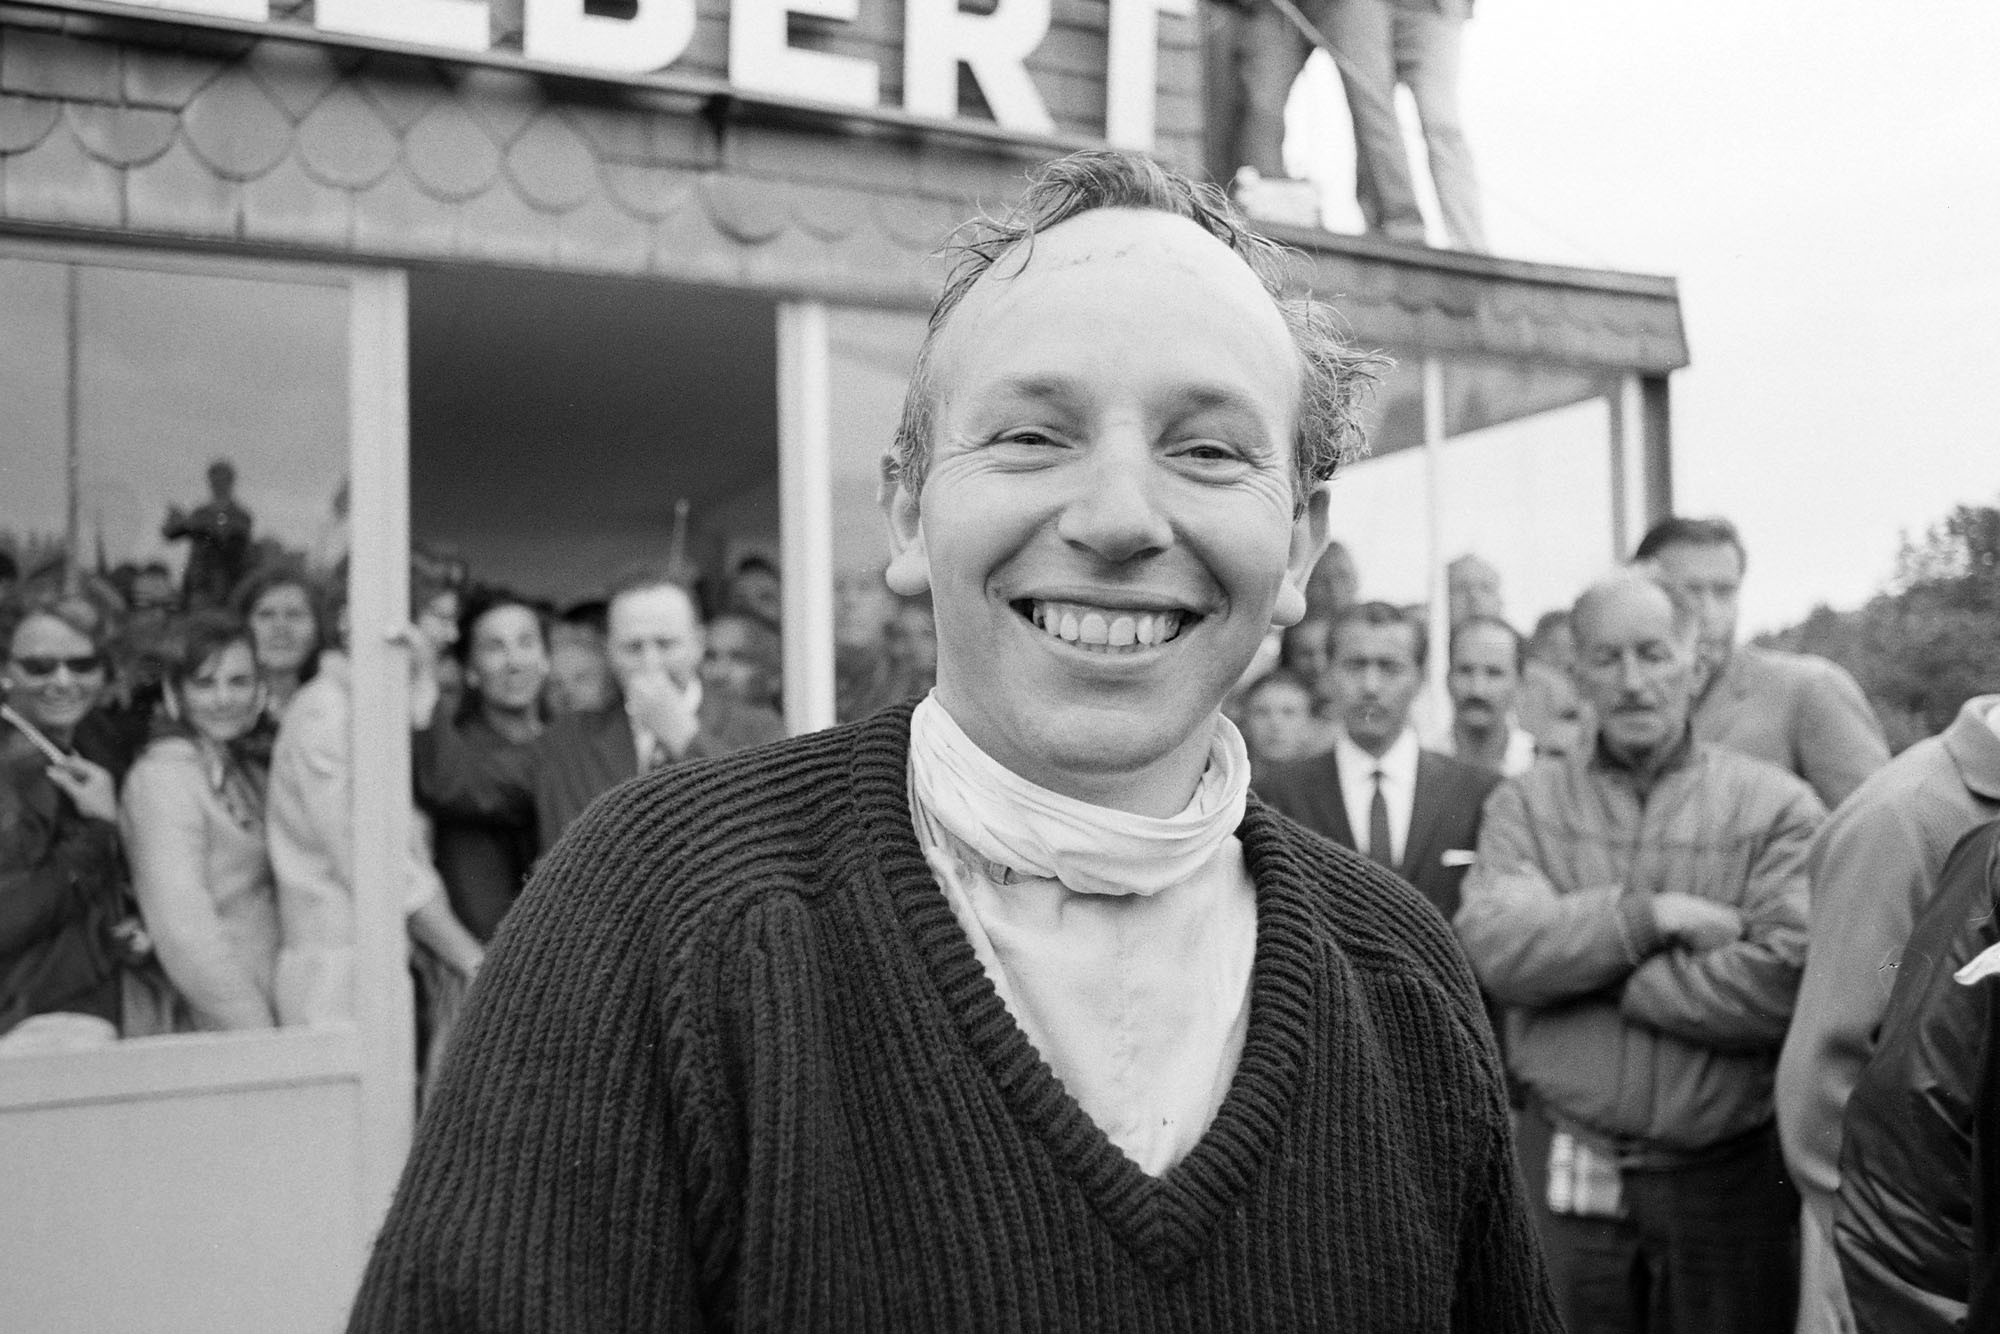 Surtees is suitably delighted after winning.